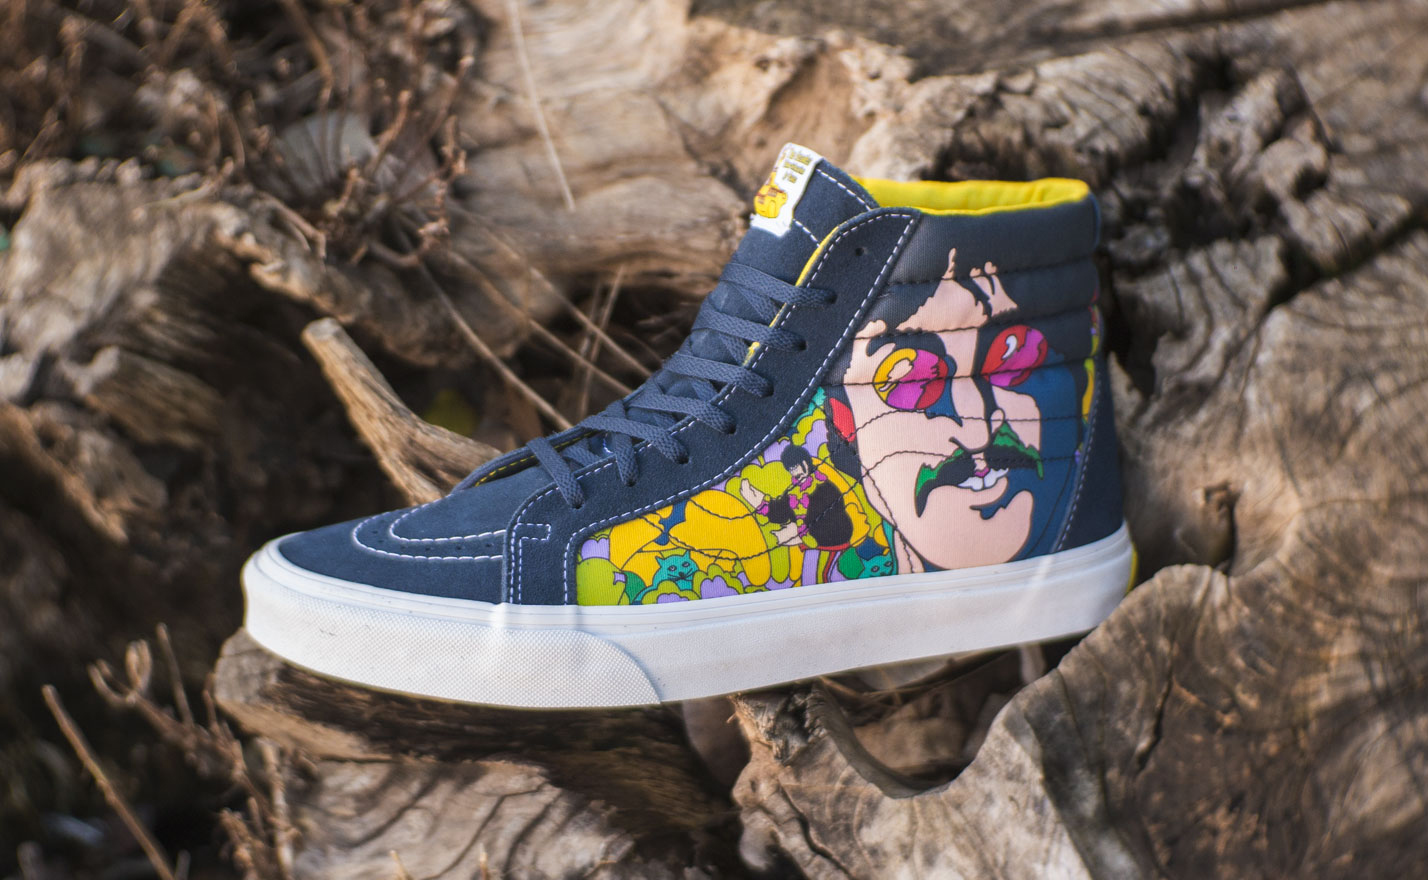 3a15e2d300 The Beatles x Vans Sk8-Hi